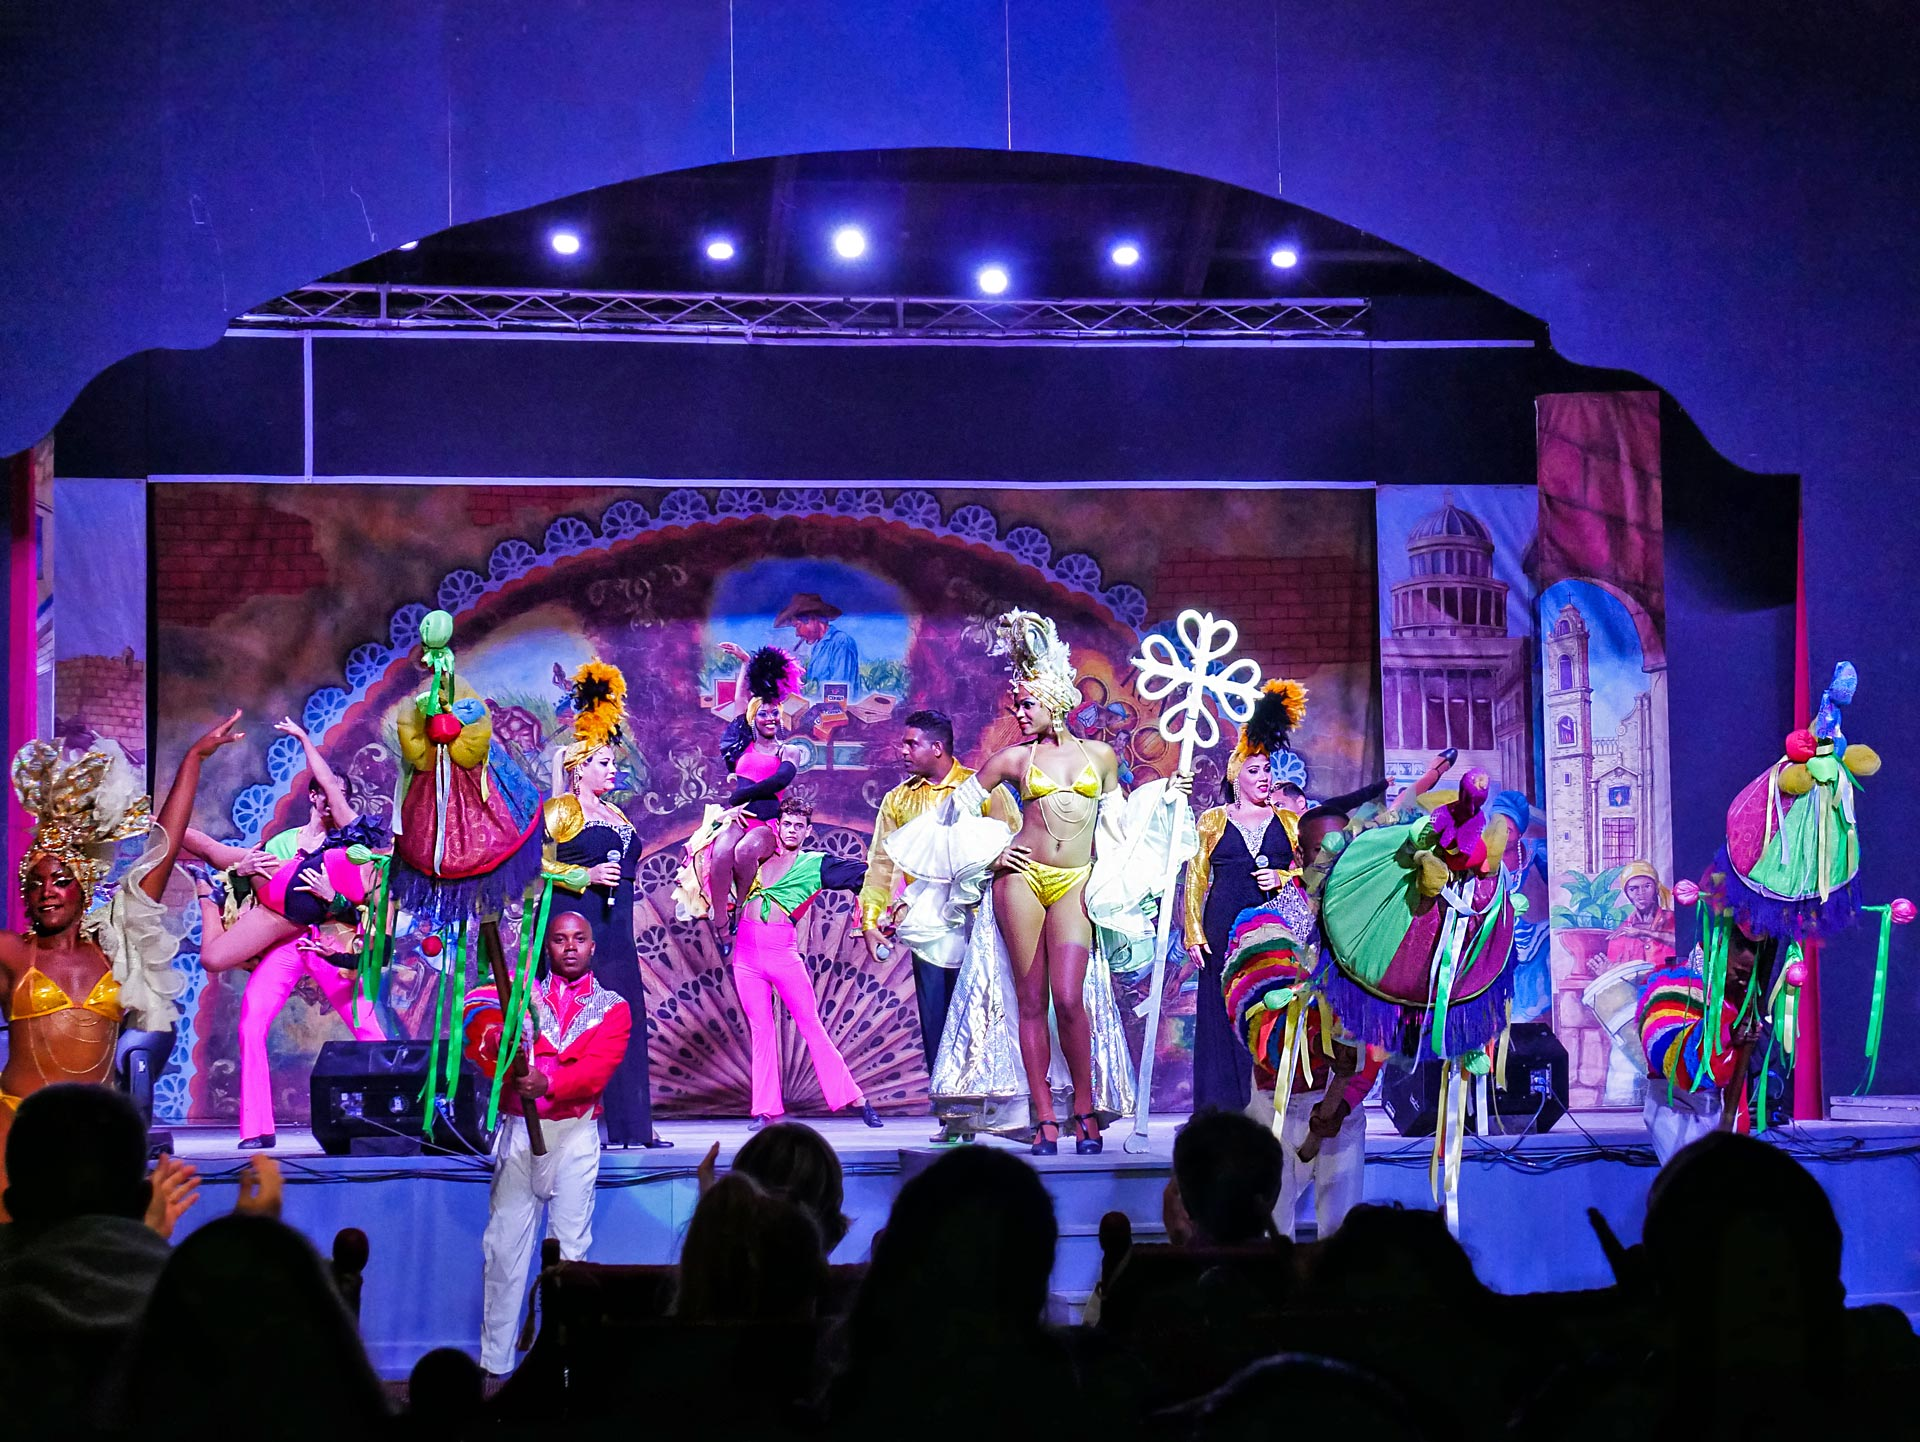 Singers and dancers in colorful outfits during hotel entertainment show in Varadero, Cuba